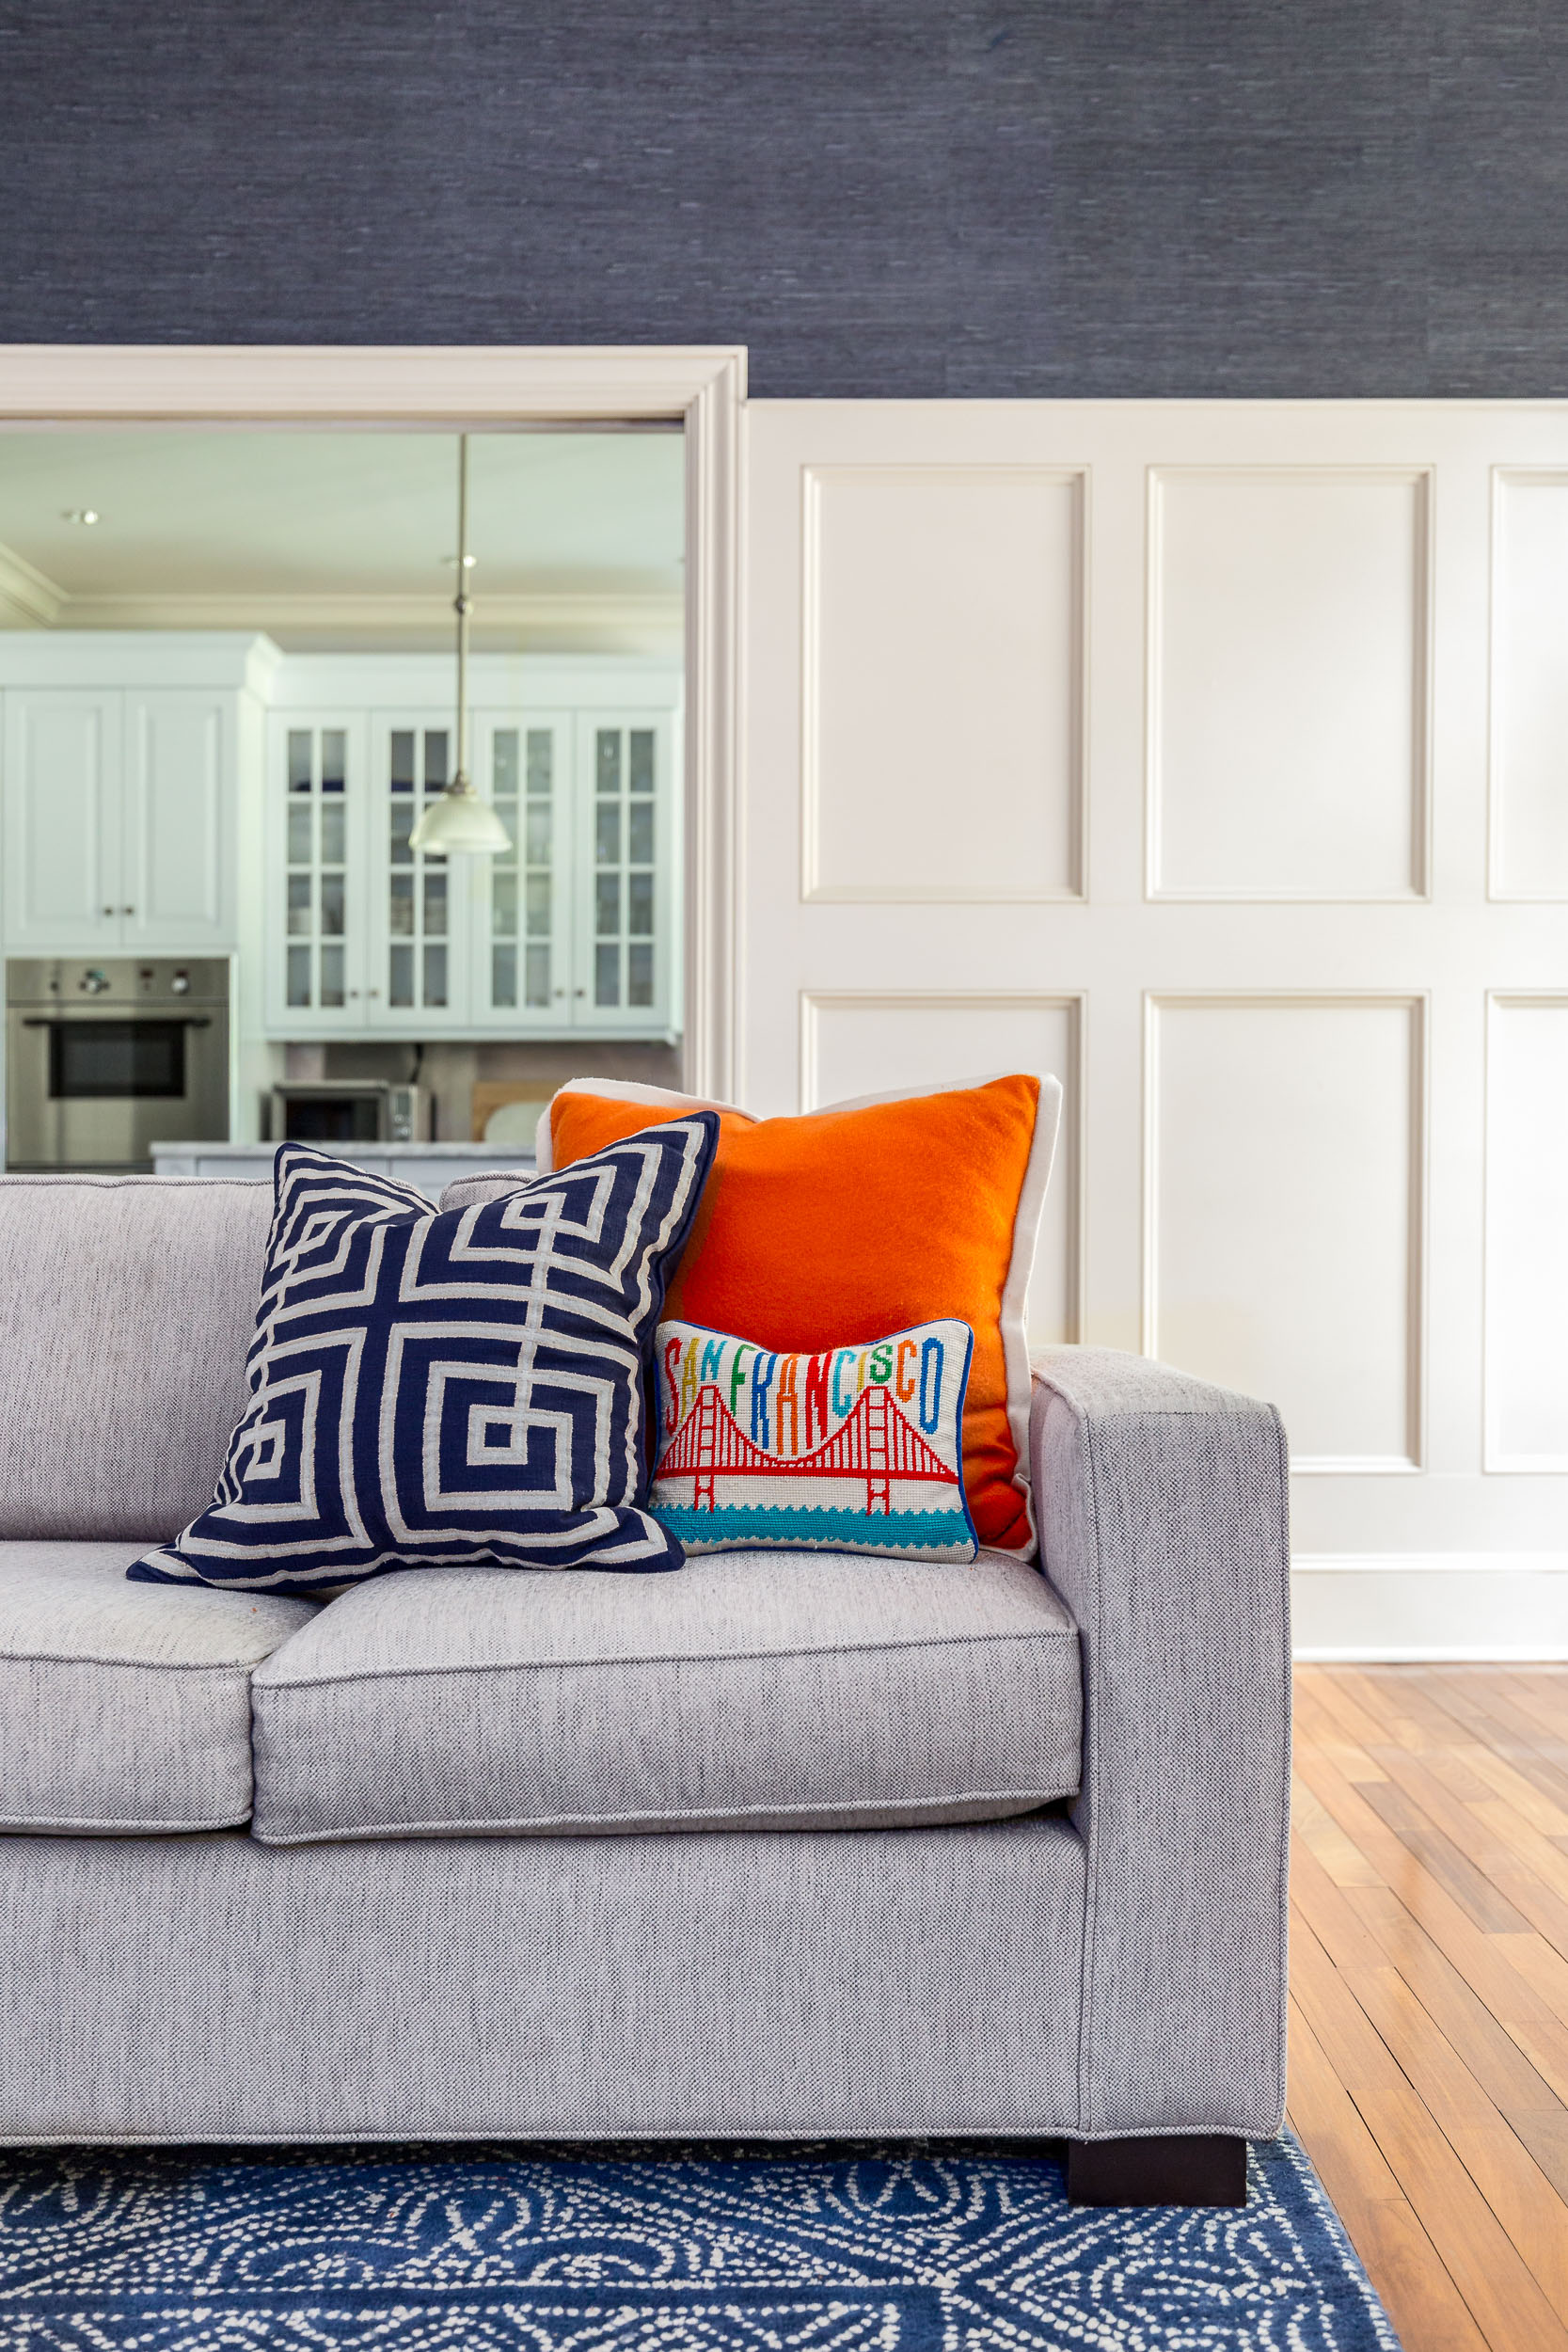 Traditional couch in a Greenwich, CT home.